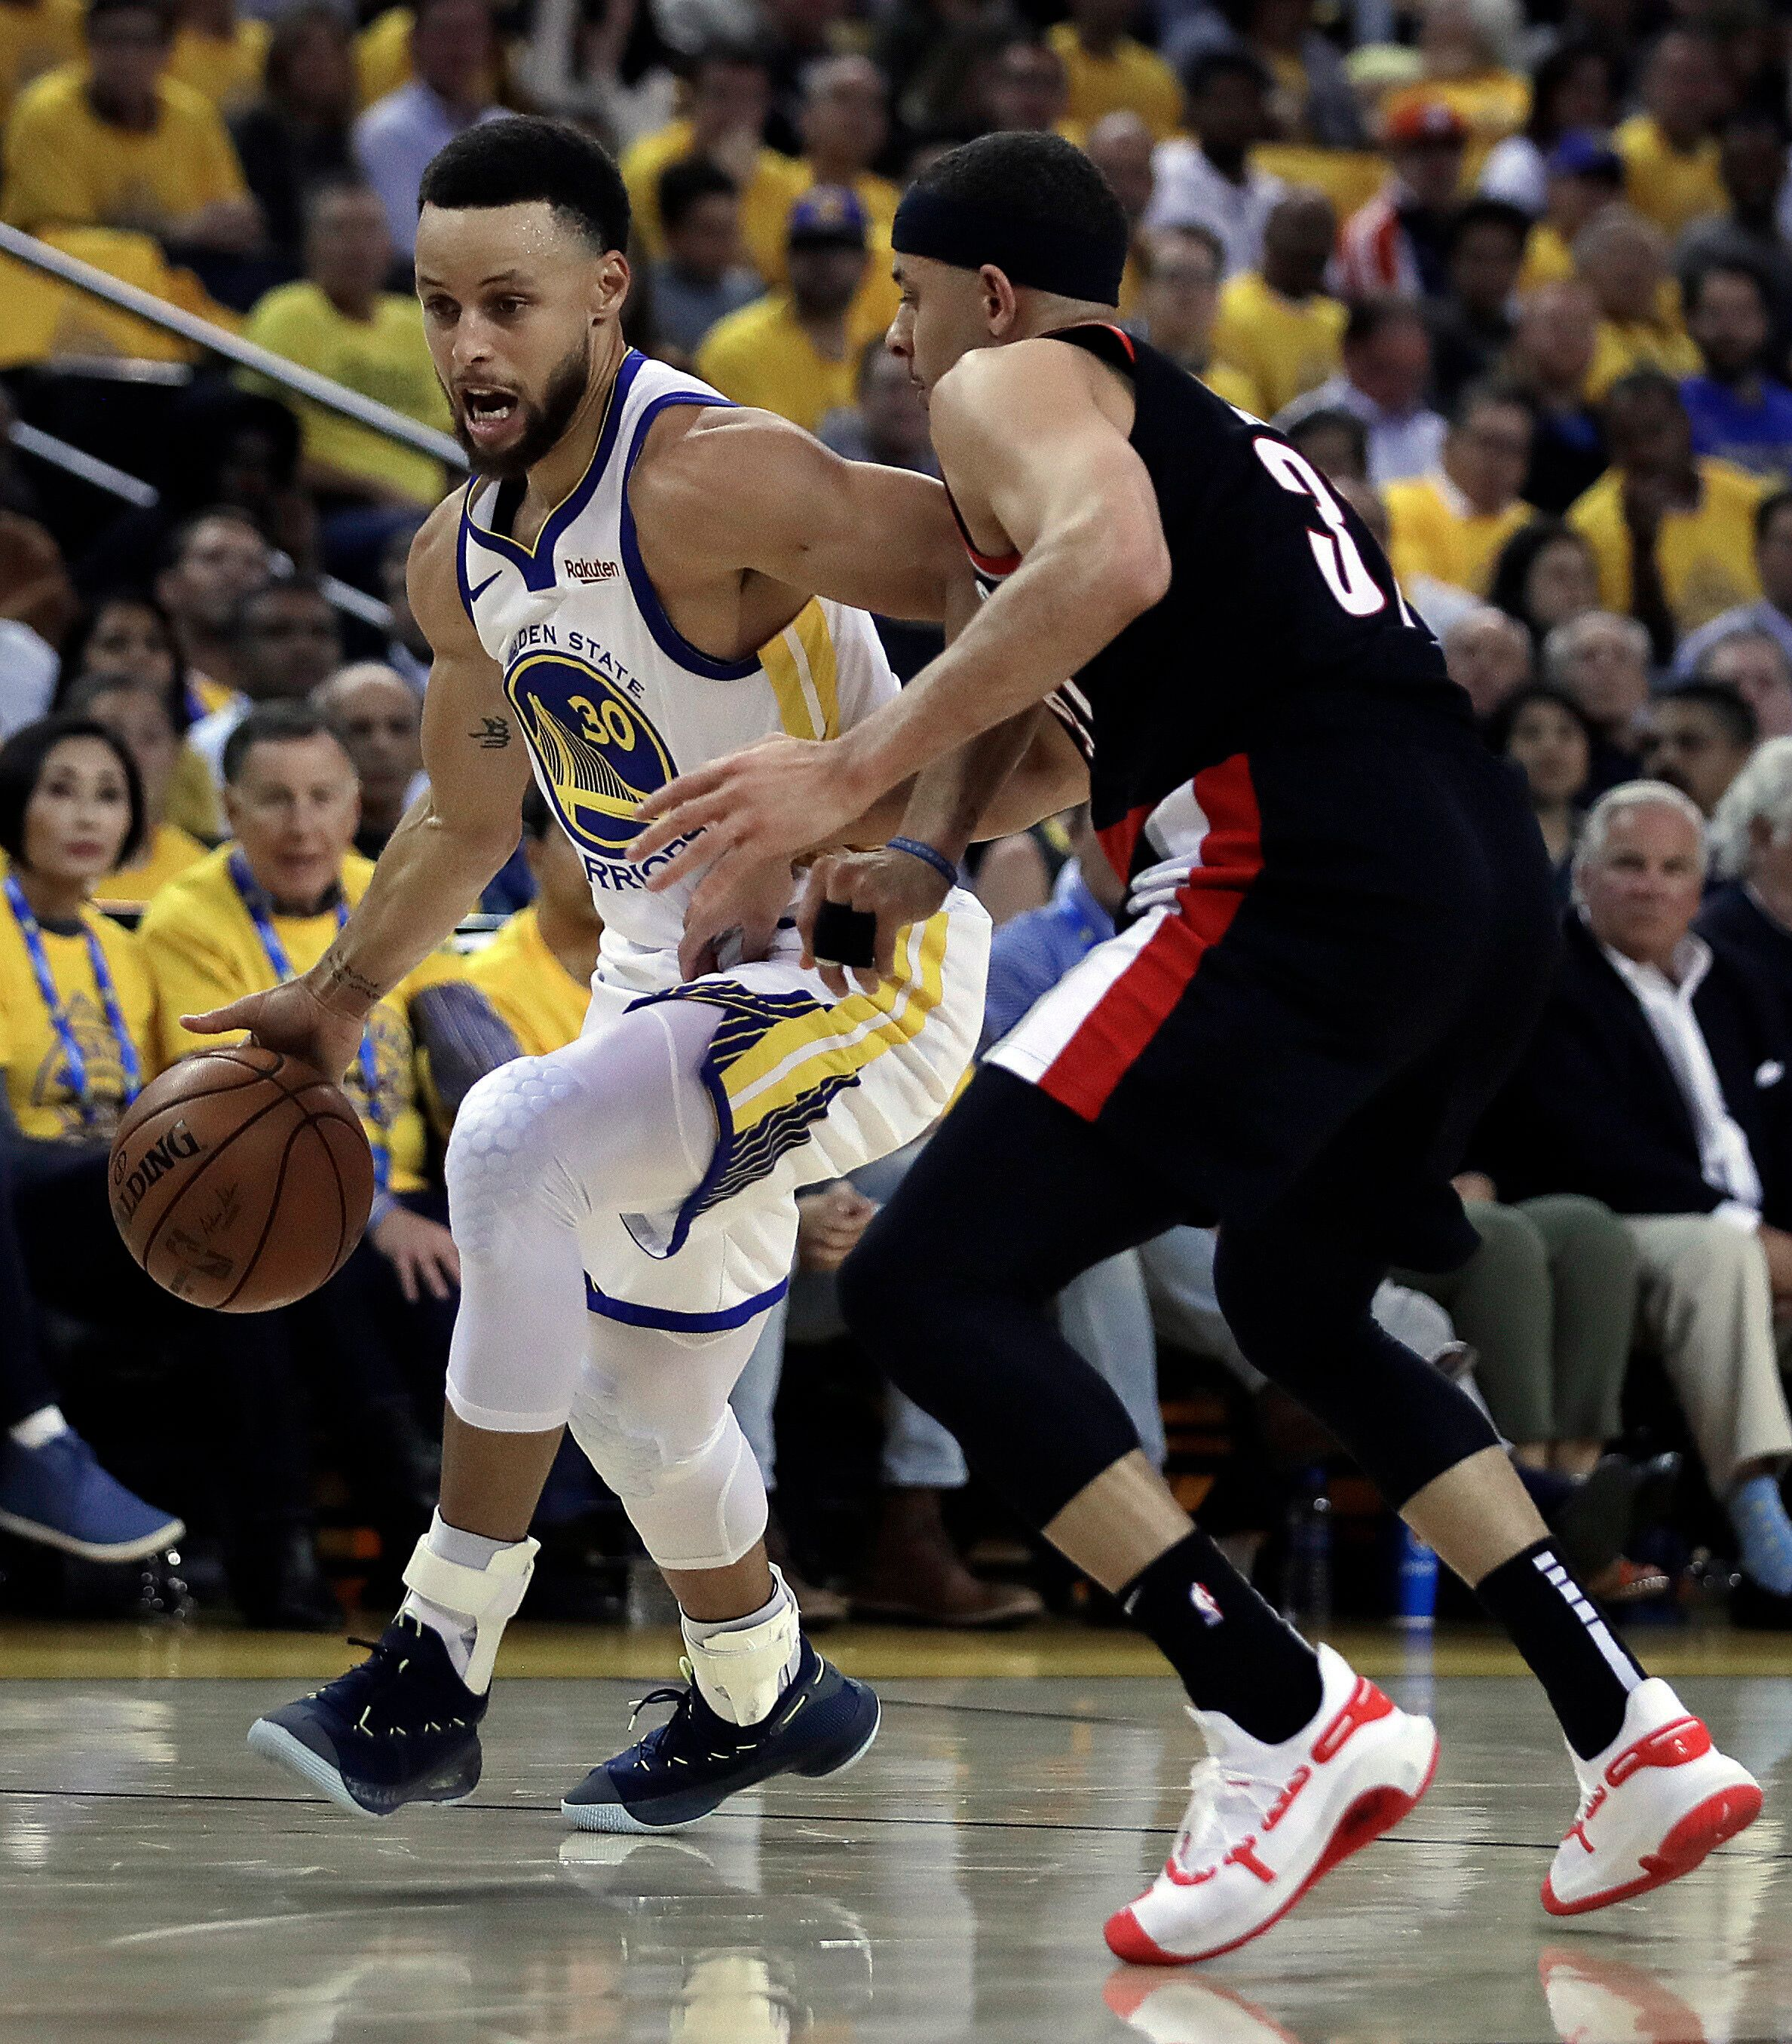 Golden State Warriors' Stephen Curry, left, drives the ball against his brother, Portland Trail Blazers' Seth Curry, during the first half of Game 1 of the NBA basketball playoffs Western Conference finals Tuesday, May 14, 2019, in Oakland, Calif. (AP Photo/Ben Margot)